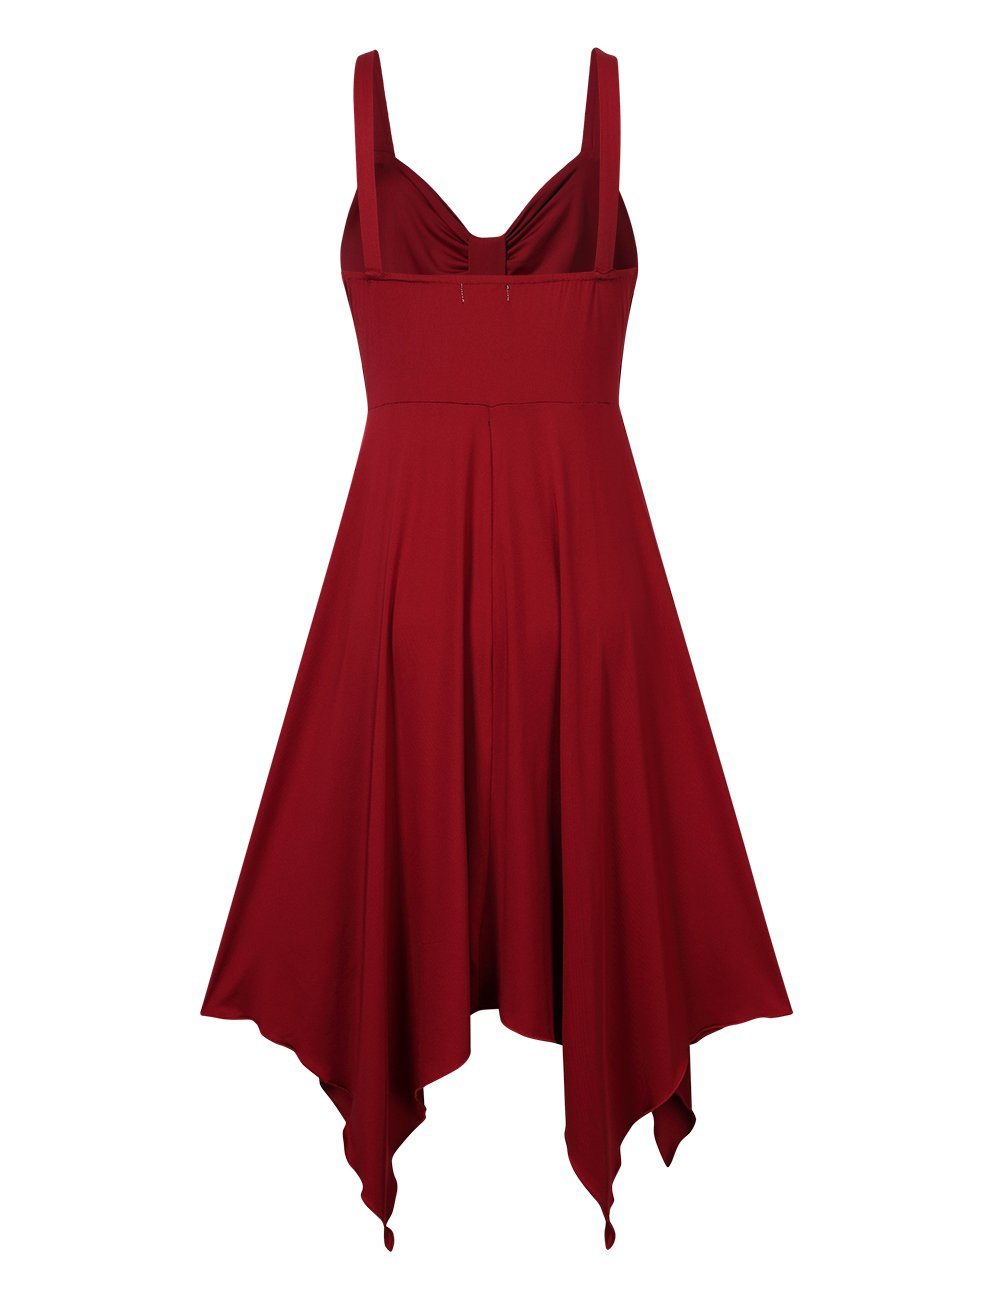 Leadingstar Women Spaghetti Strap Irregular Hem Summer Casual Beach Flared Dress Sundress-Burgundy S by Leadingstar (Image #4)